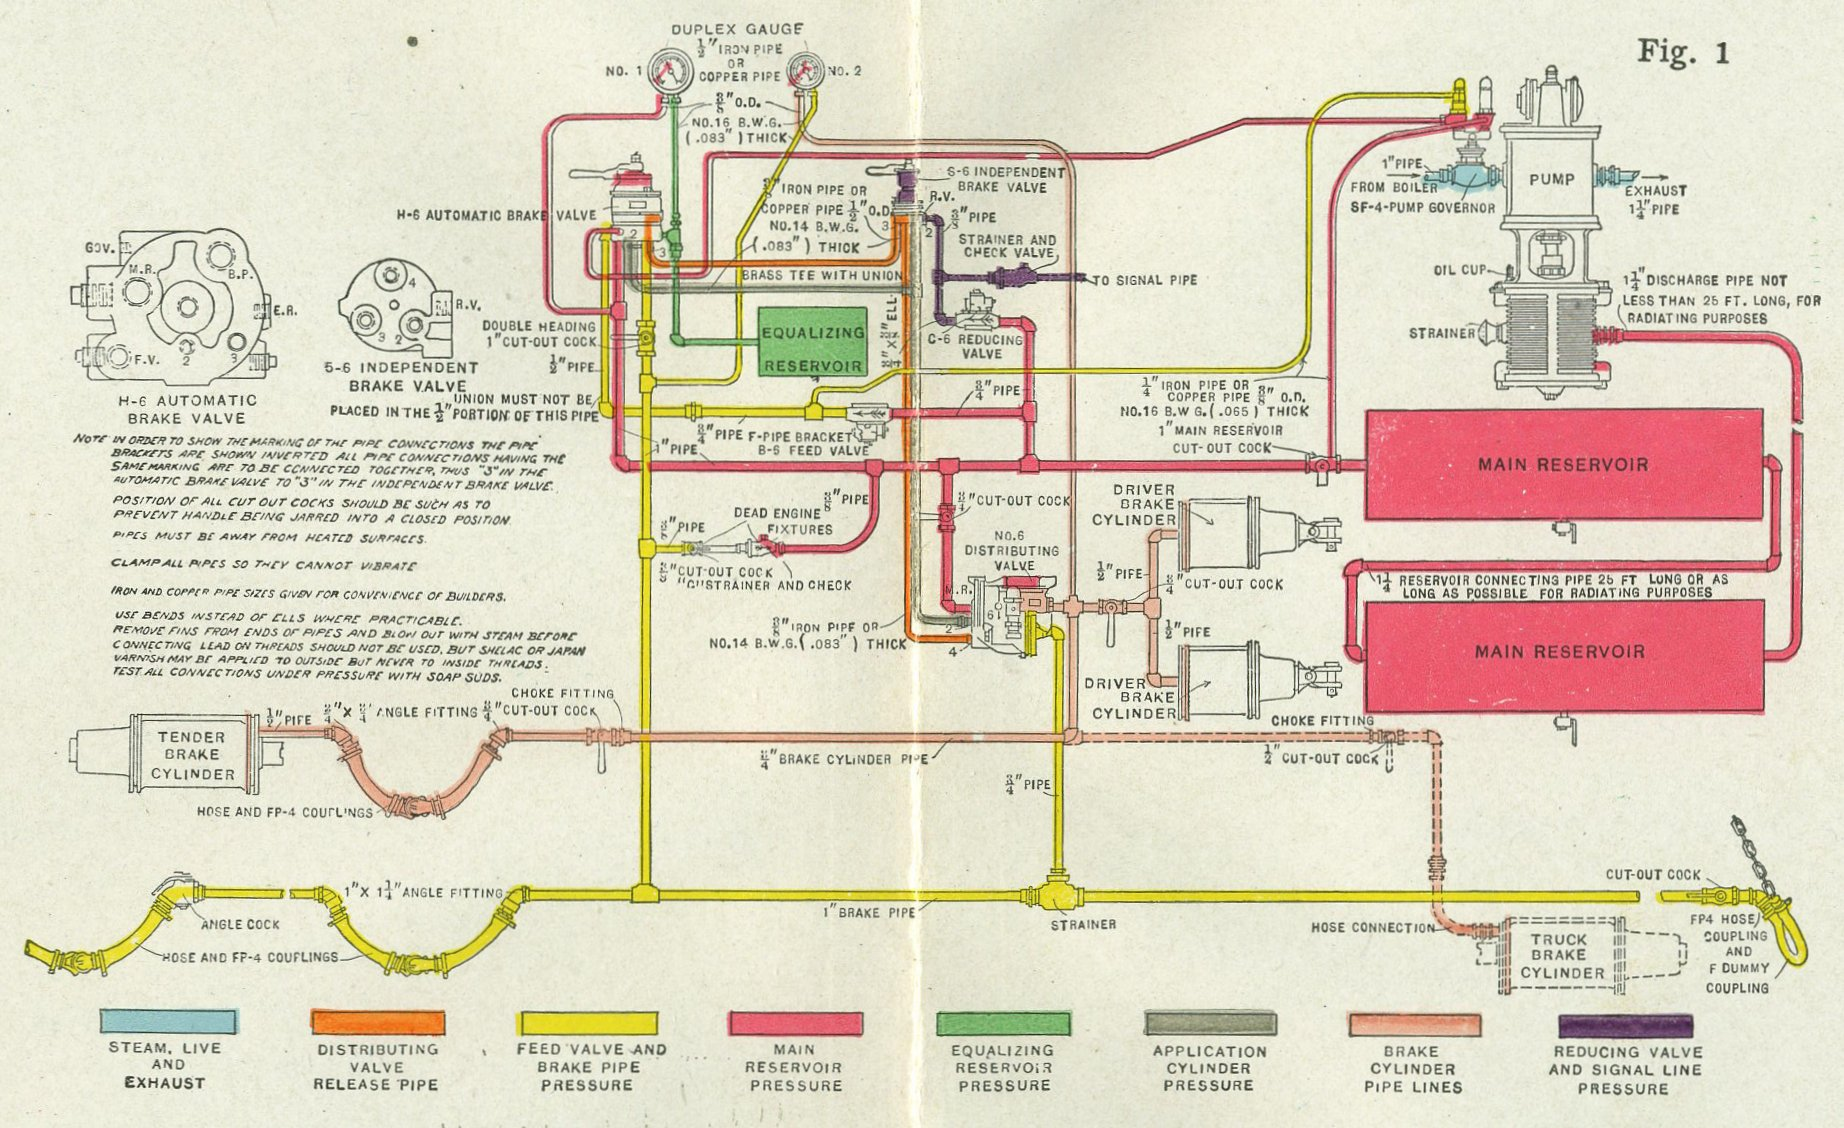 Air Brake System Diagram http://en.wikipedia.org/wiki/File:Westinghouse_Air_Brake_piping_diagram.jpg